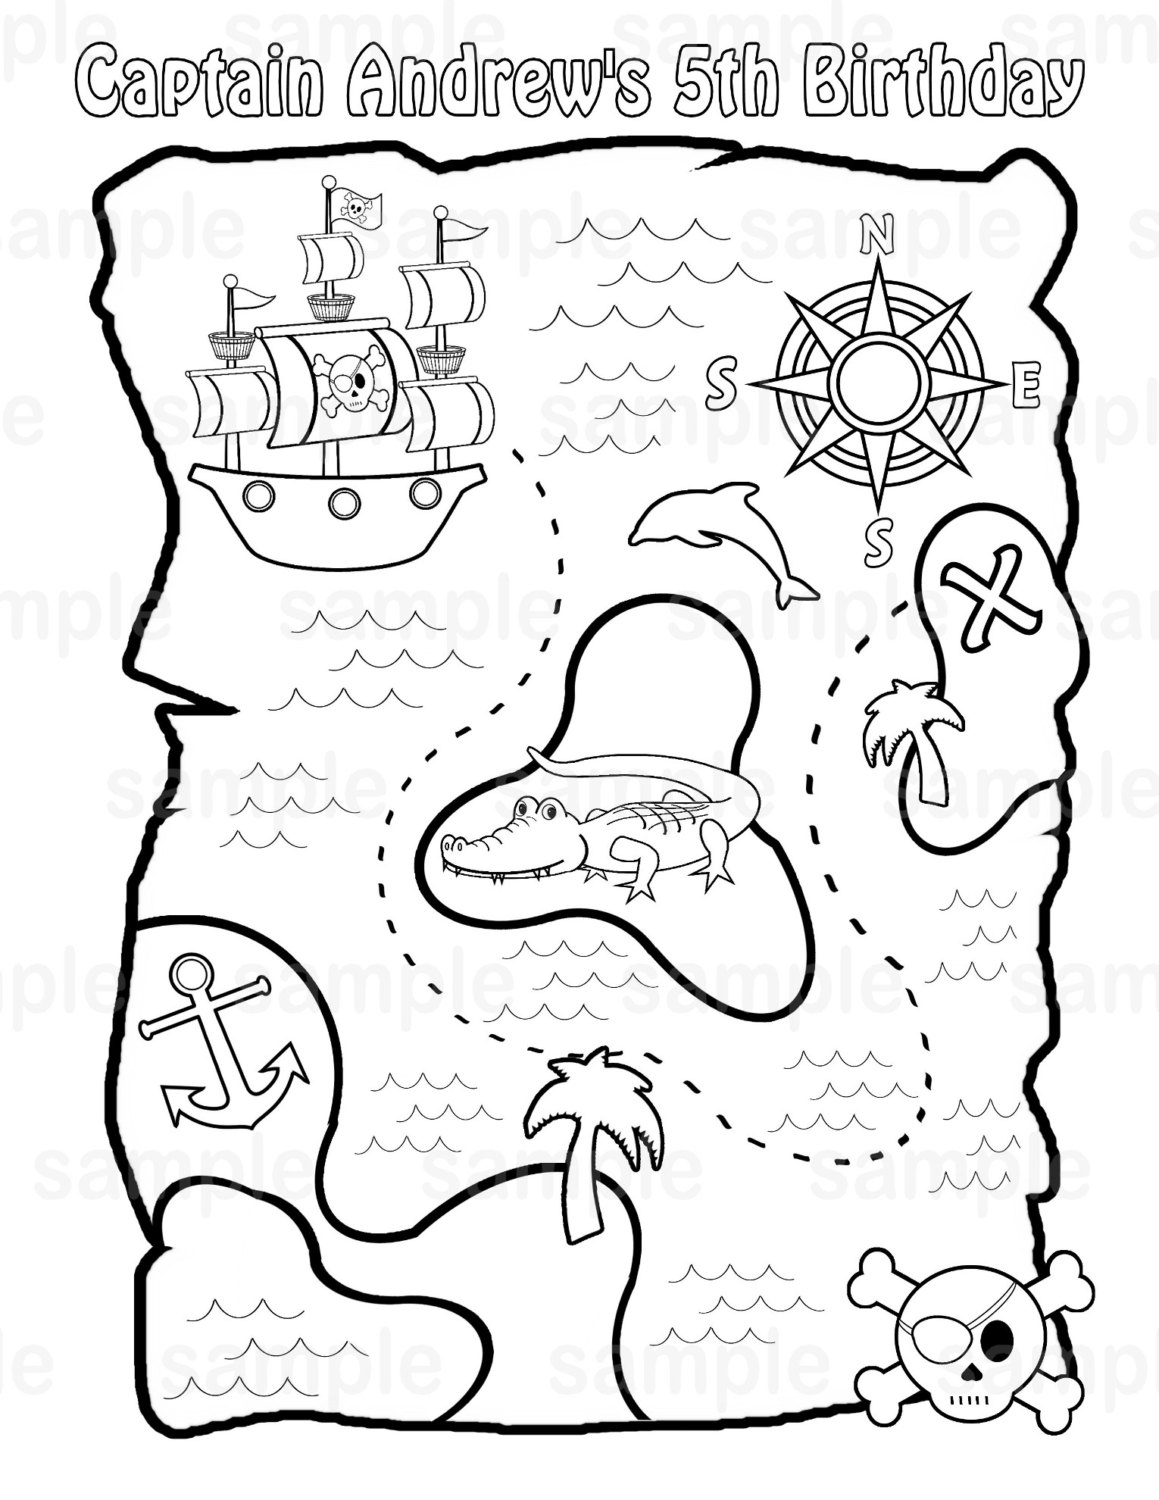 zoo map coloring page empty zoo cage coloring page sketch coloring page page zoo coloring map